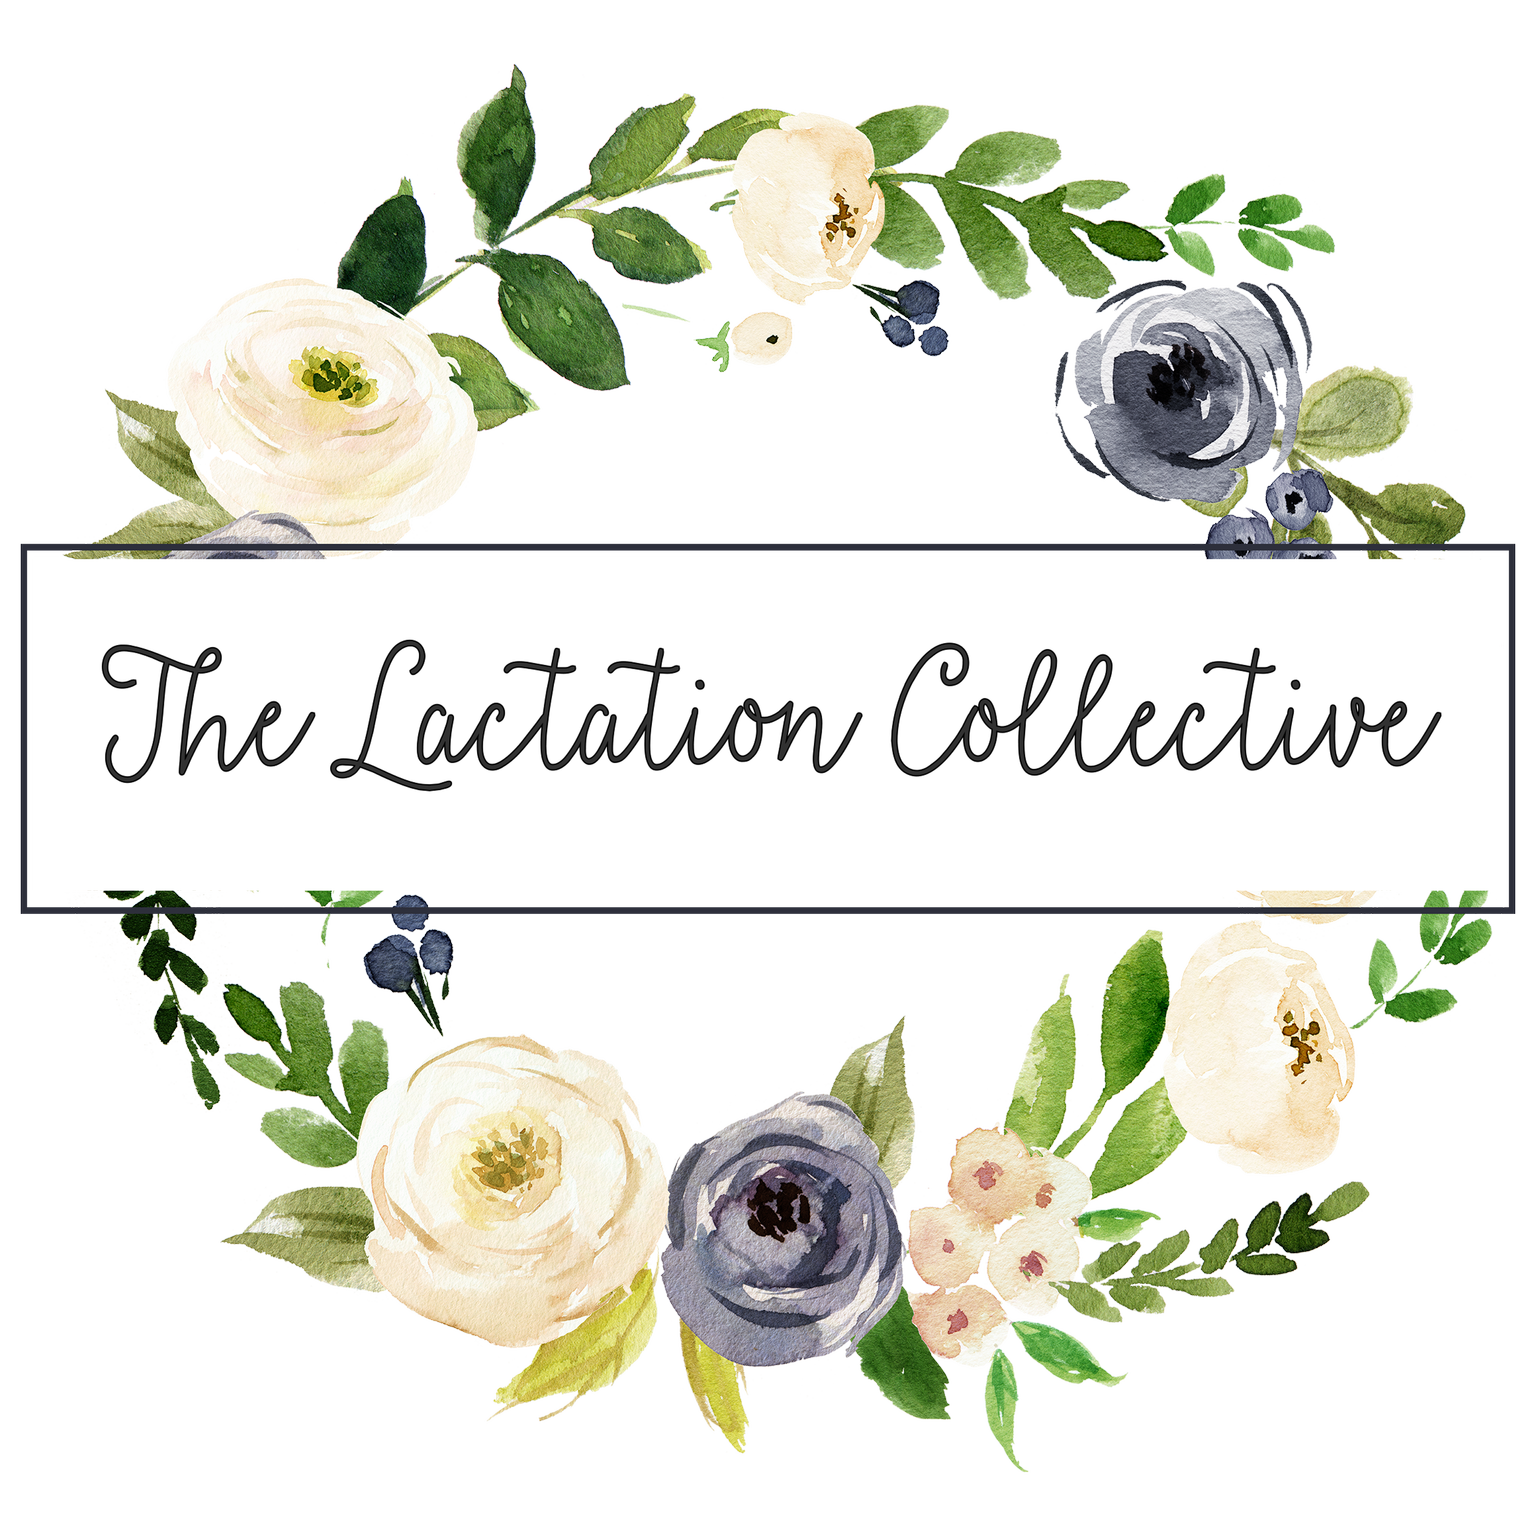 The Lactation Collective